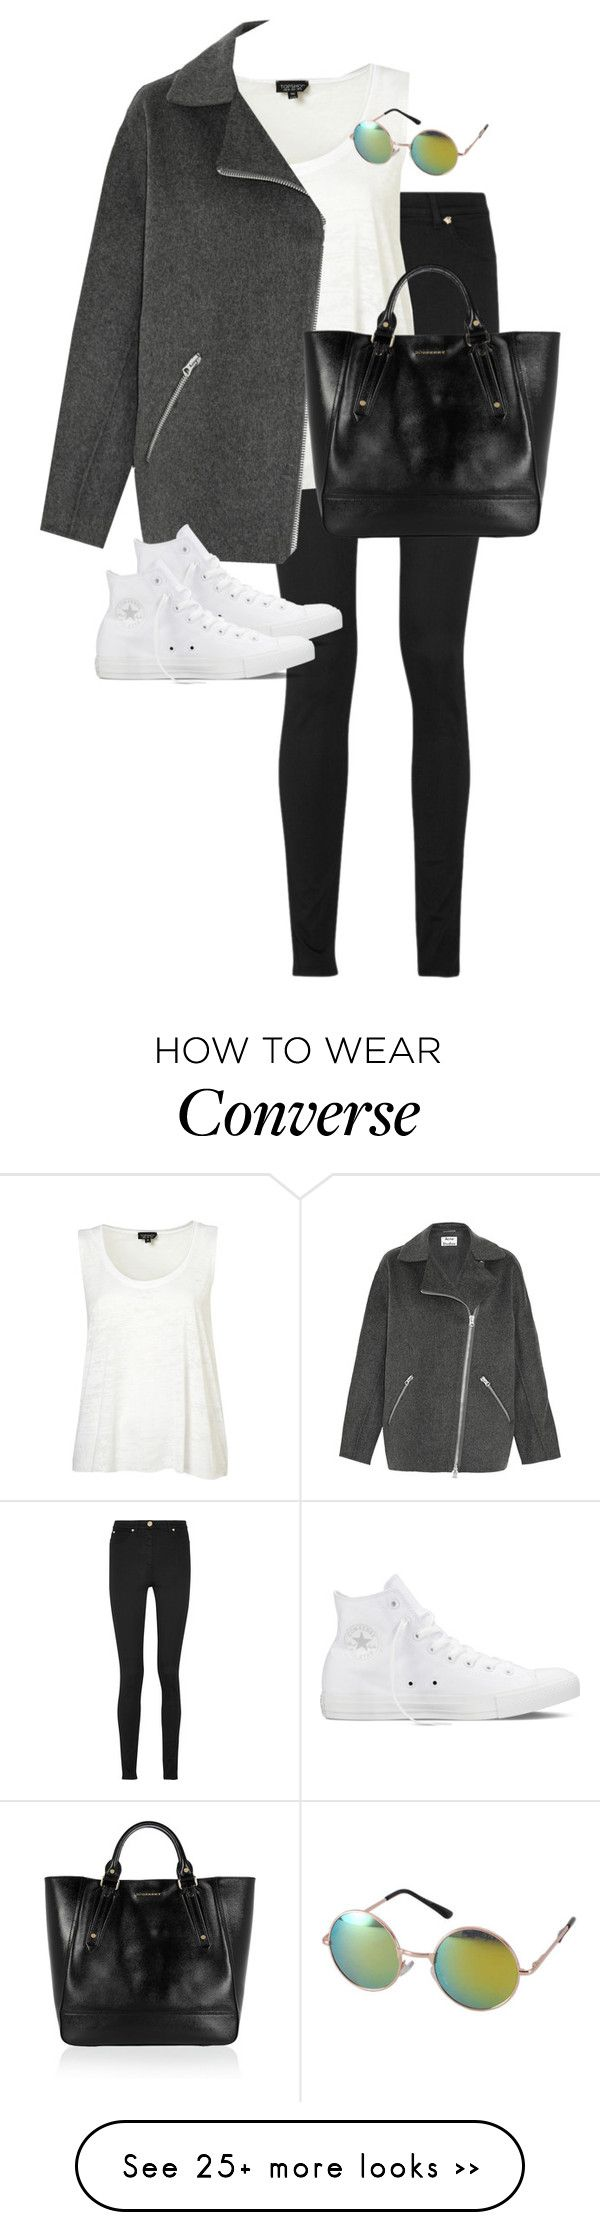 """""""Untitled #9623"""" by alexsrogers on Polyvore featuring Versace, Acne Studios, Converse, Revo and Burberry"""